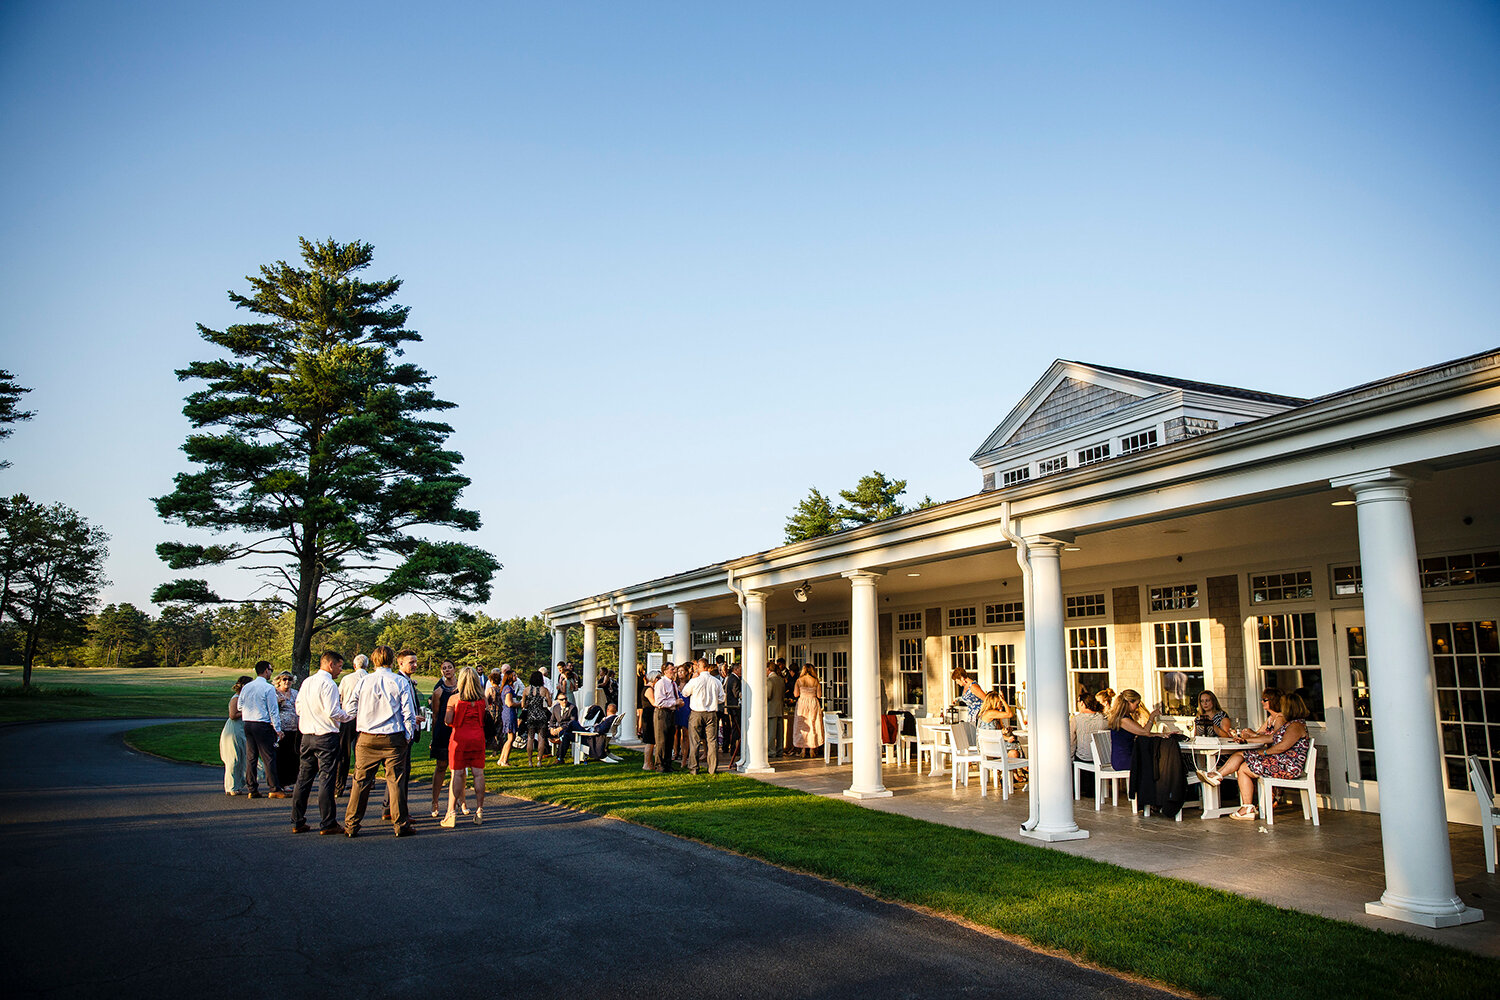 Pinehills-Pavilion-Wedding-Cocktail-Hour.jpg